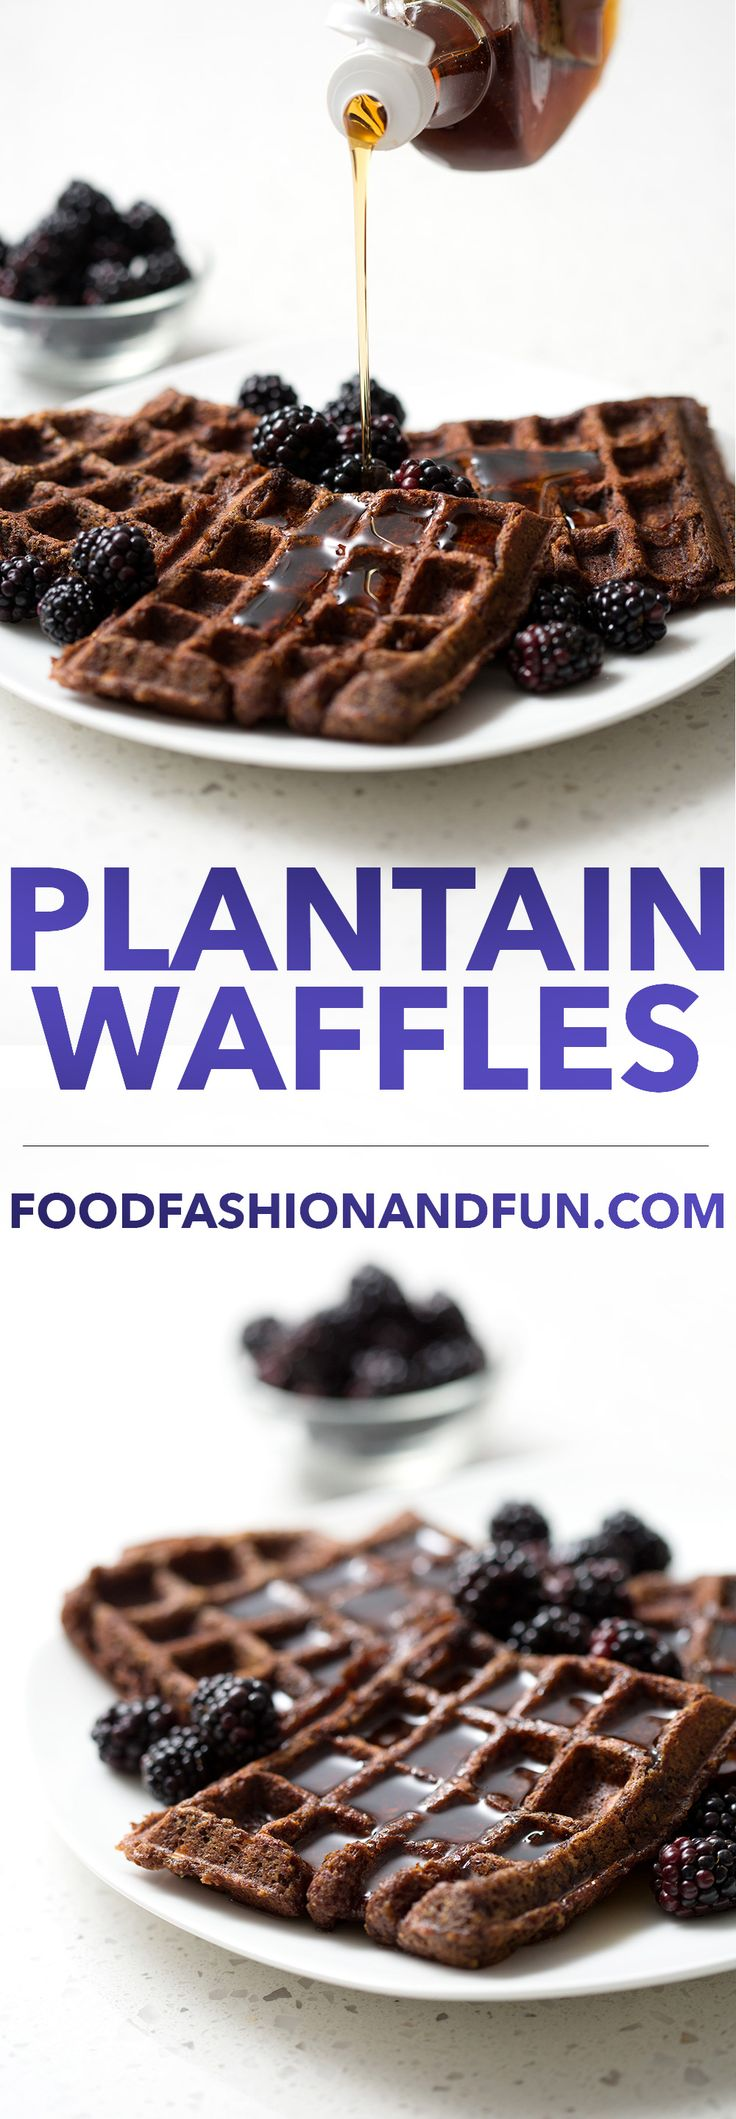 Finally, there's an AIP friendly waffle for all you brunch lovers out there. These Plantain Waffles are made from green plantains and bananas! The green plantains make these waffles light and the bananas add a natural sweetness. This recipe is allergy friendly (gluten, dairy, seafood, nut, egg, and soy free) and suits the autoimmune protocol (AIP), paleo and vegan diets.